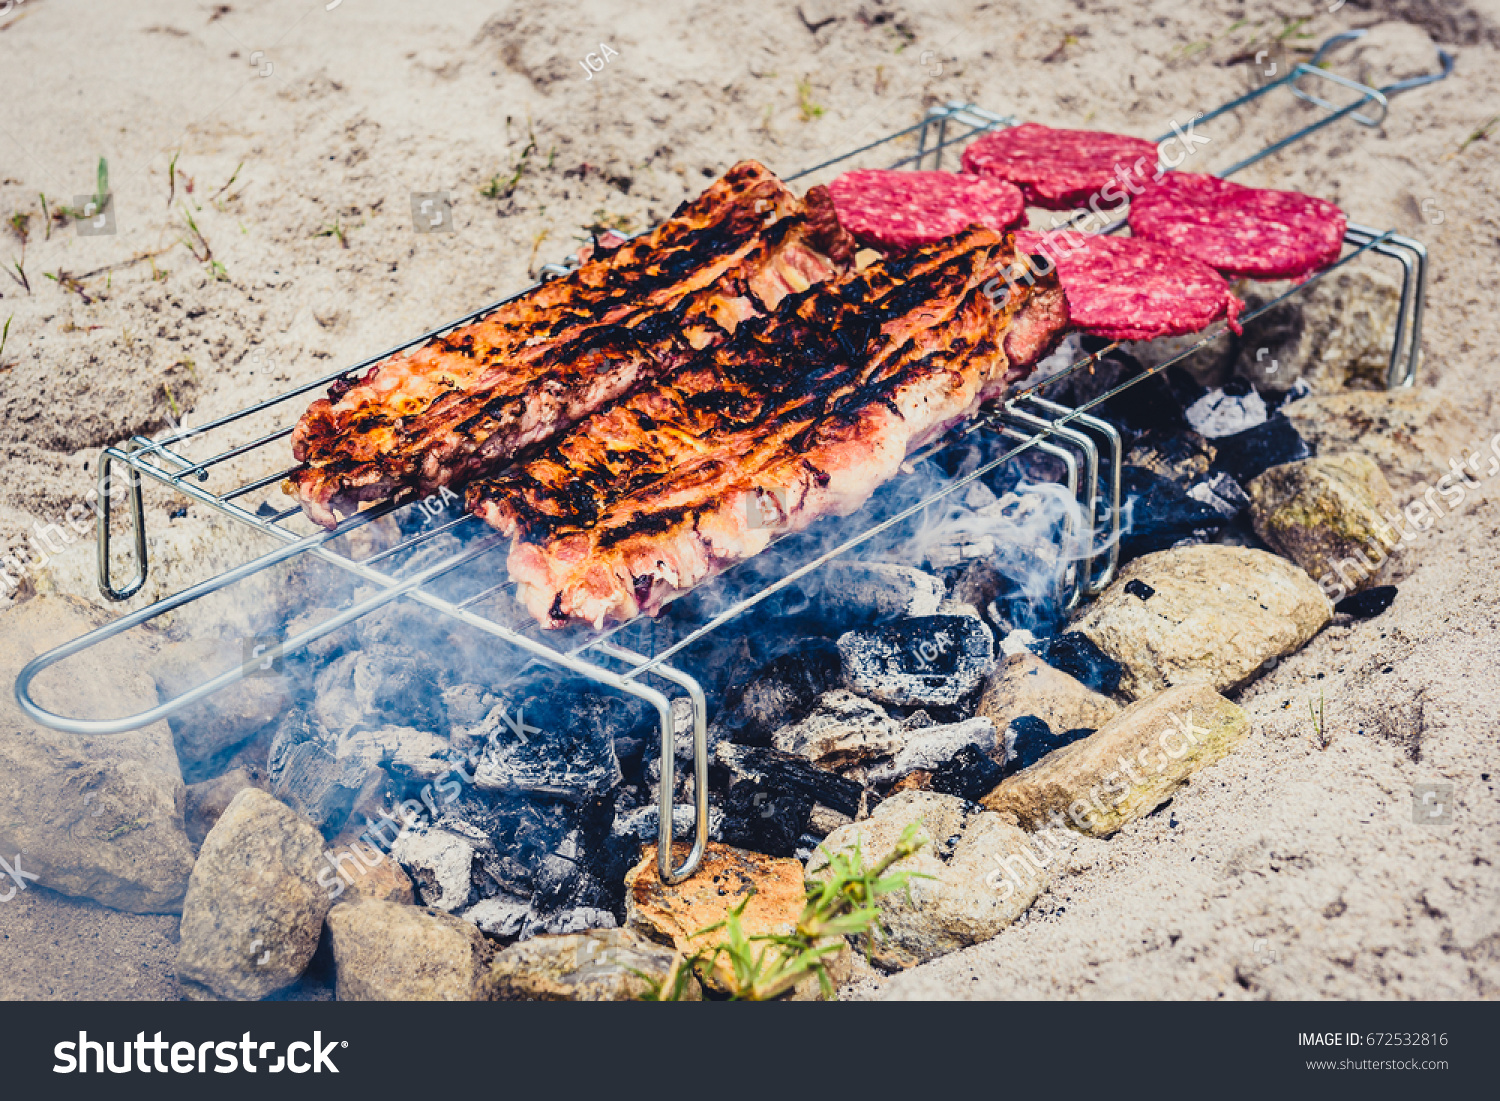 Pork Ribs Burgers On Homemade Improvised Stock Photo Edit Now 672532816